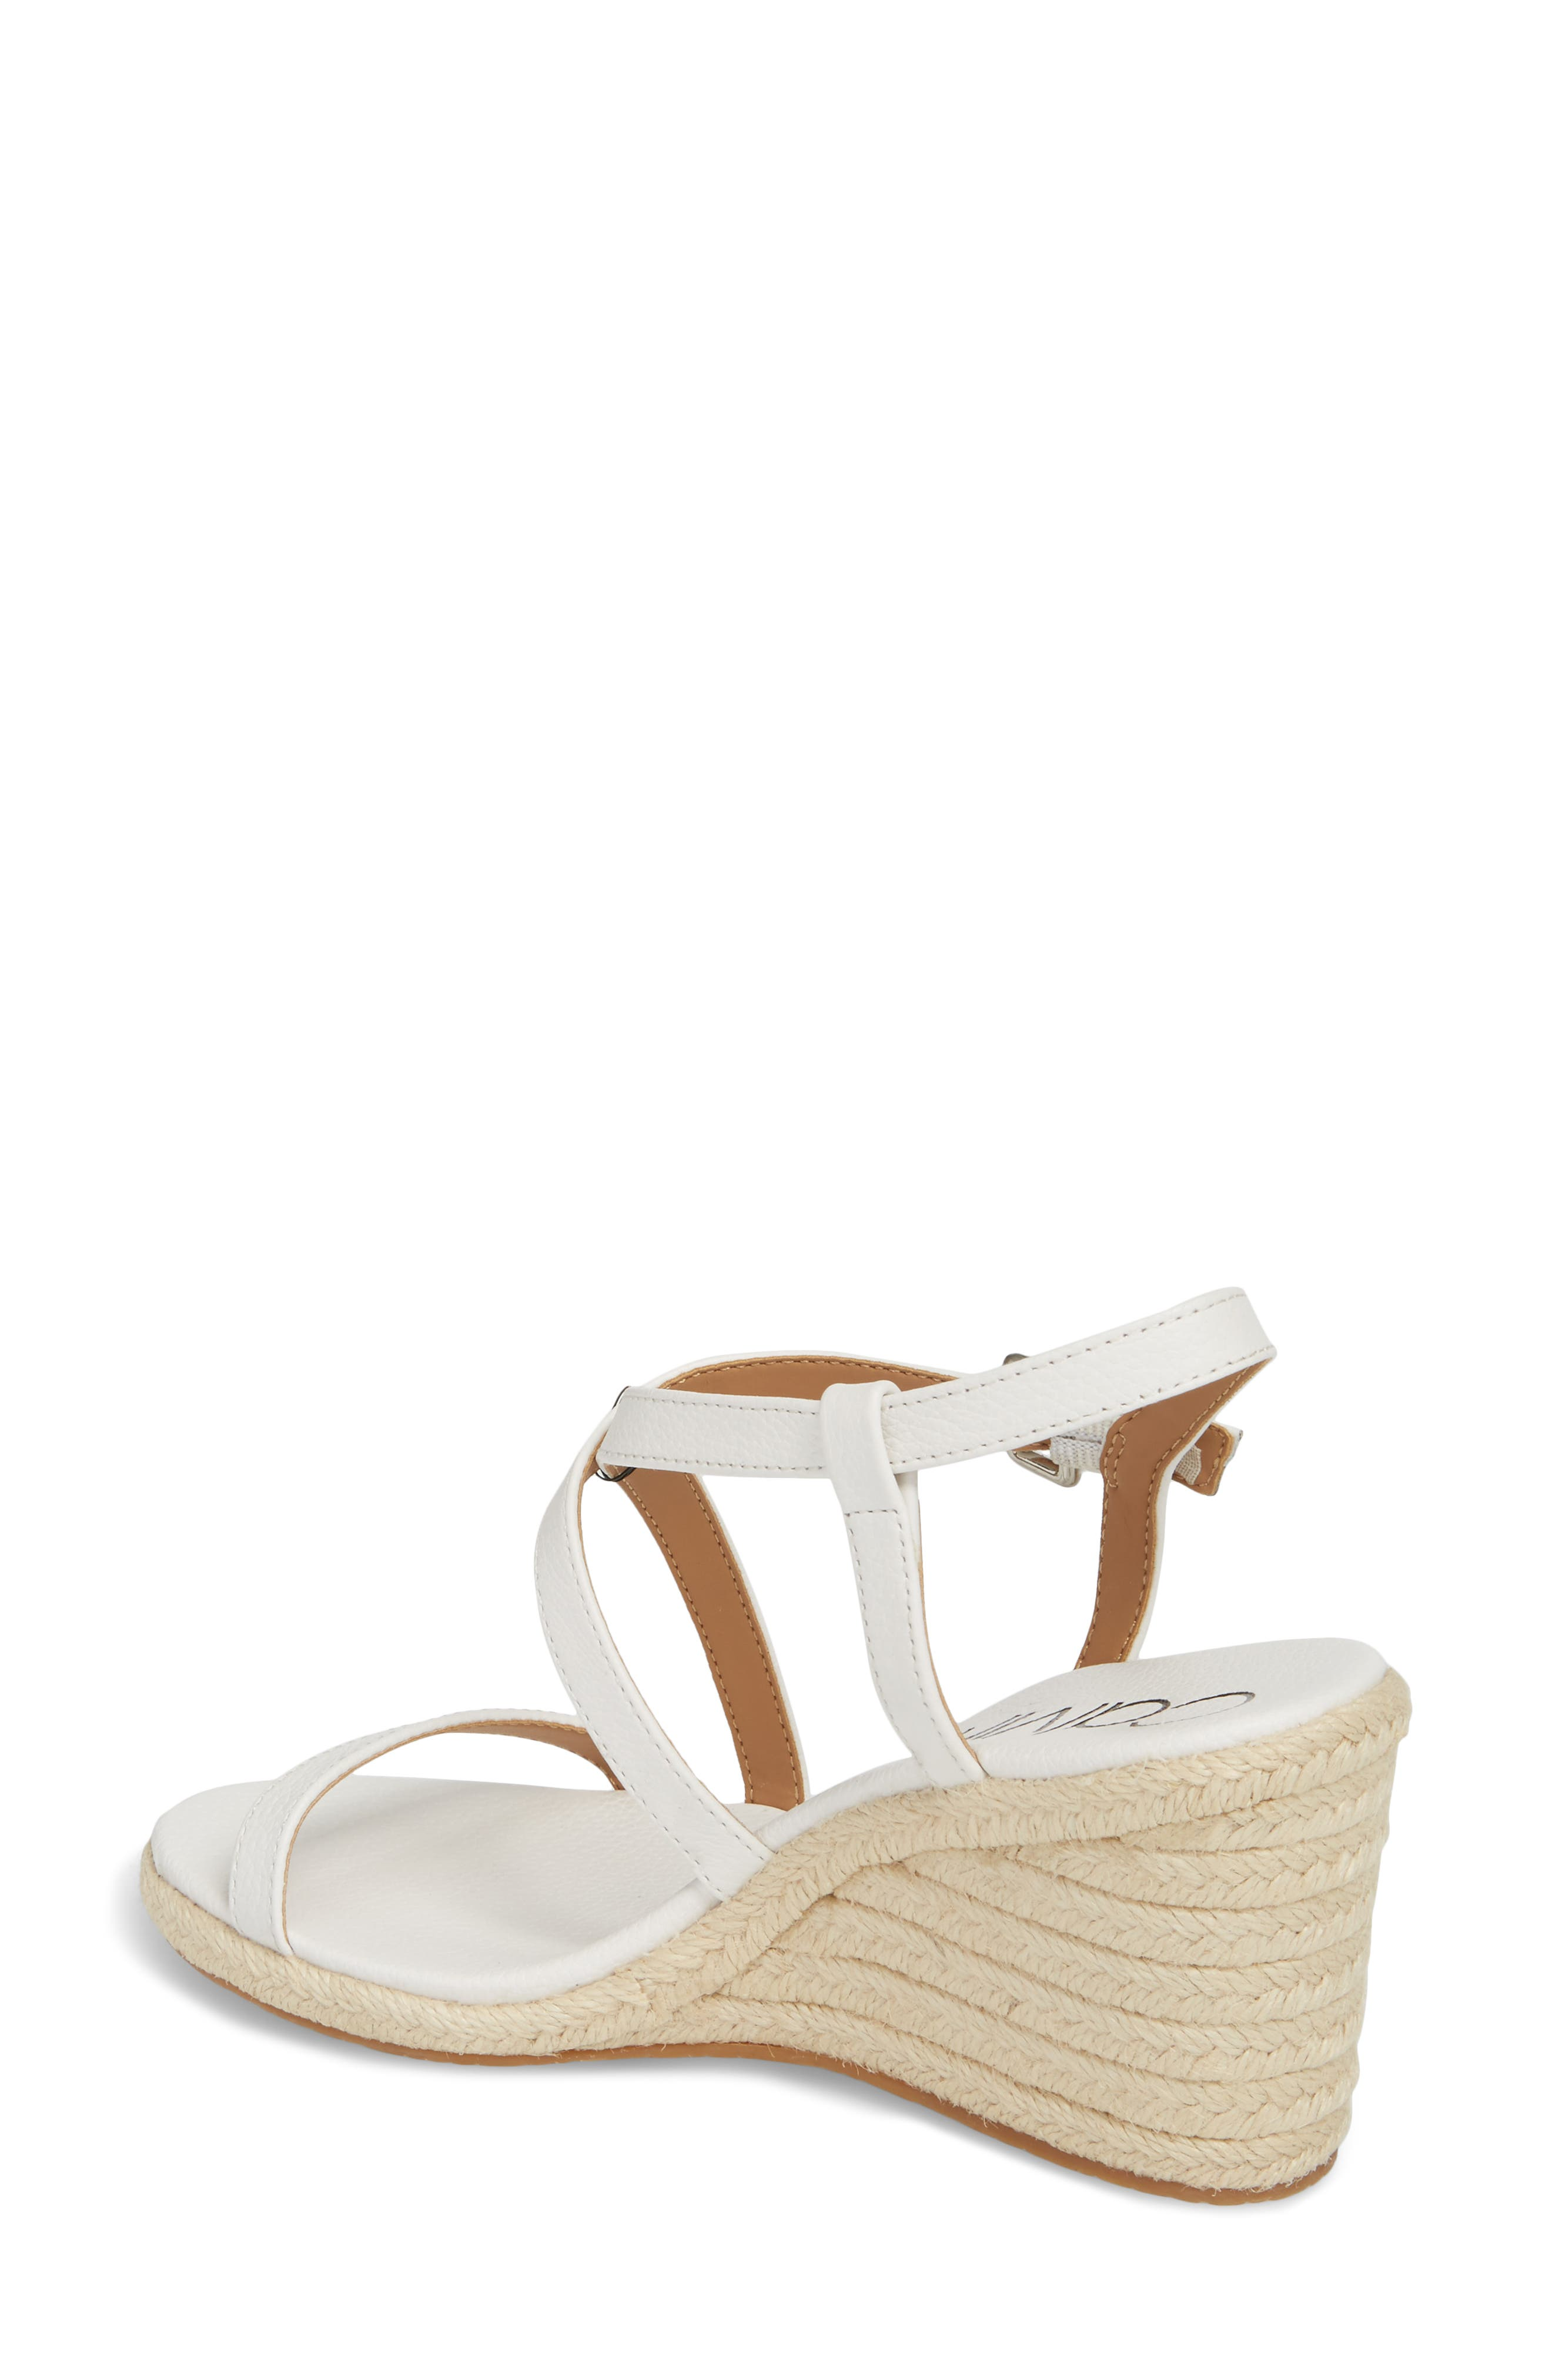 Bellemine Espadrille Wedge Sandal,                             Alternate thumbnail 2, color,                             PLATINUM WHITE PEBBLE LEATHER